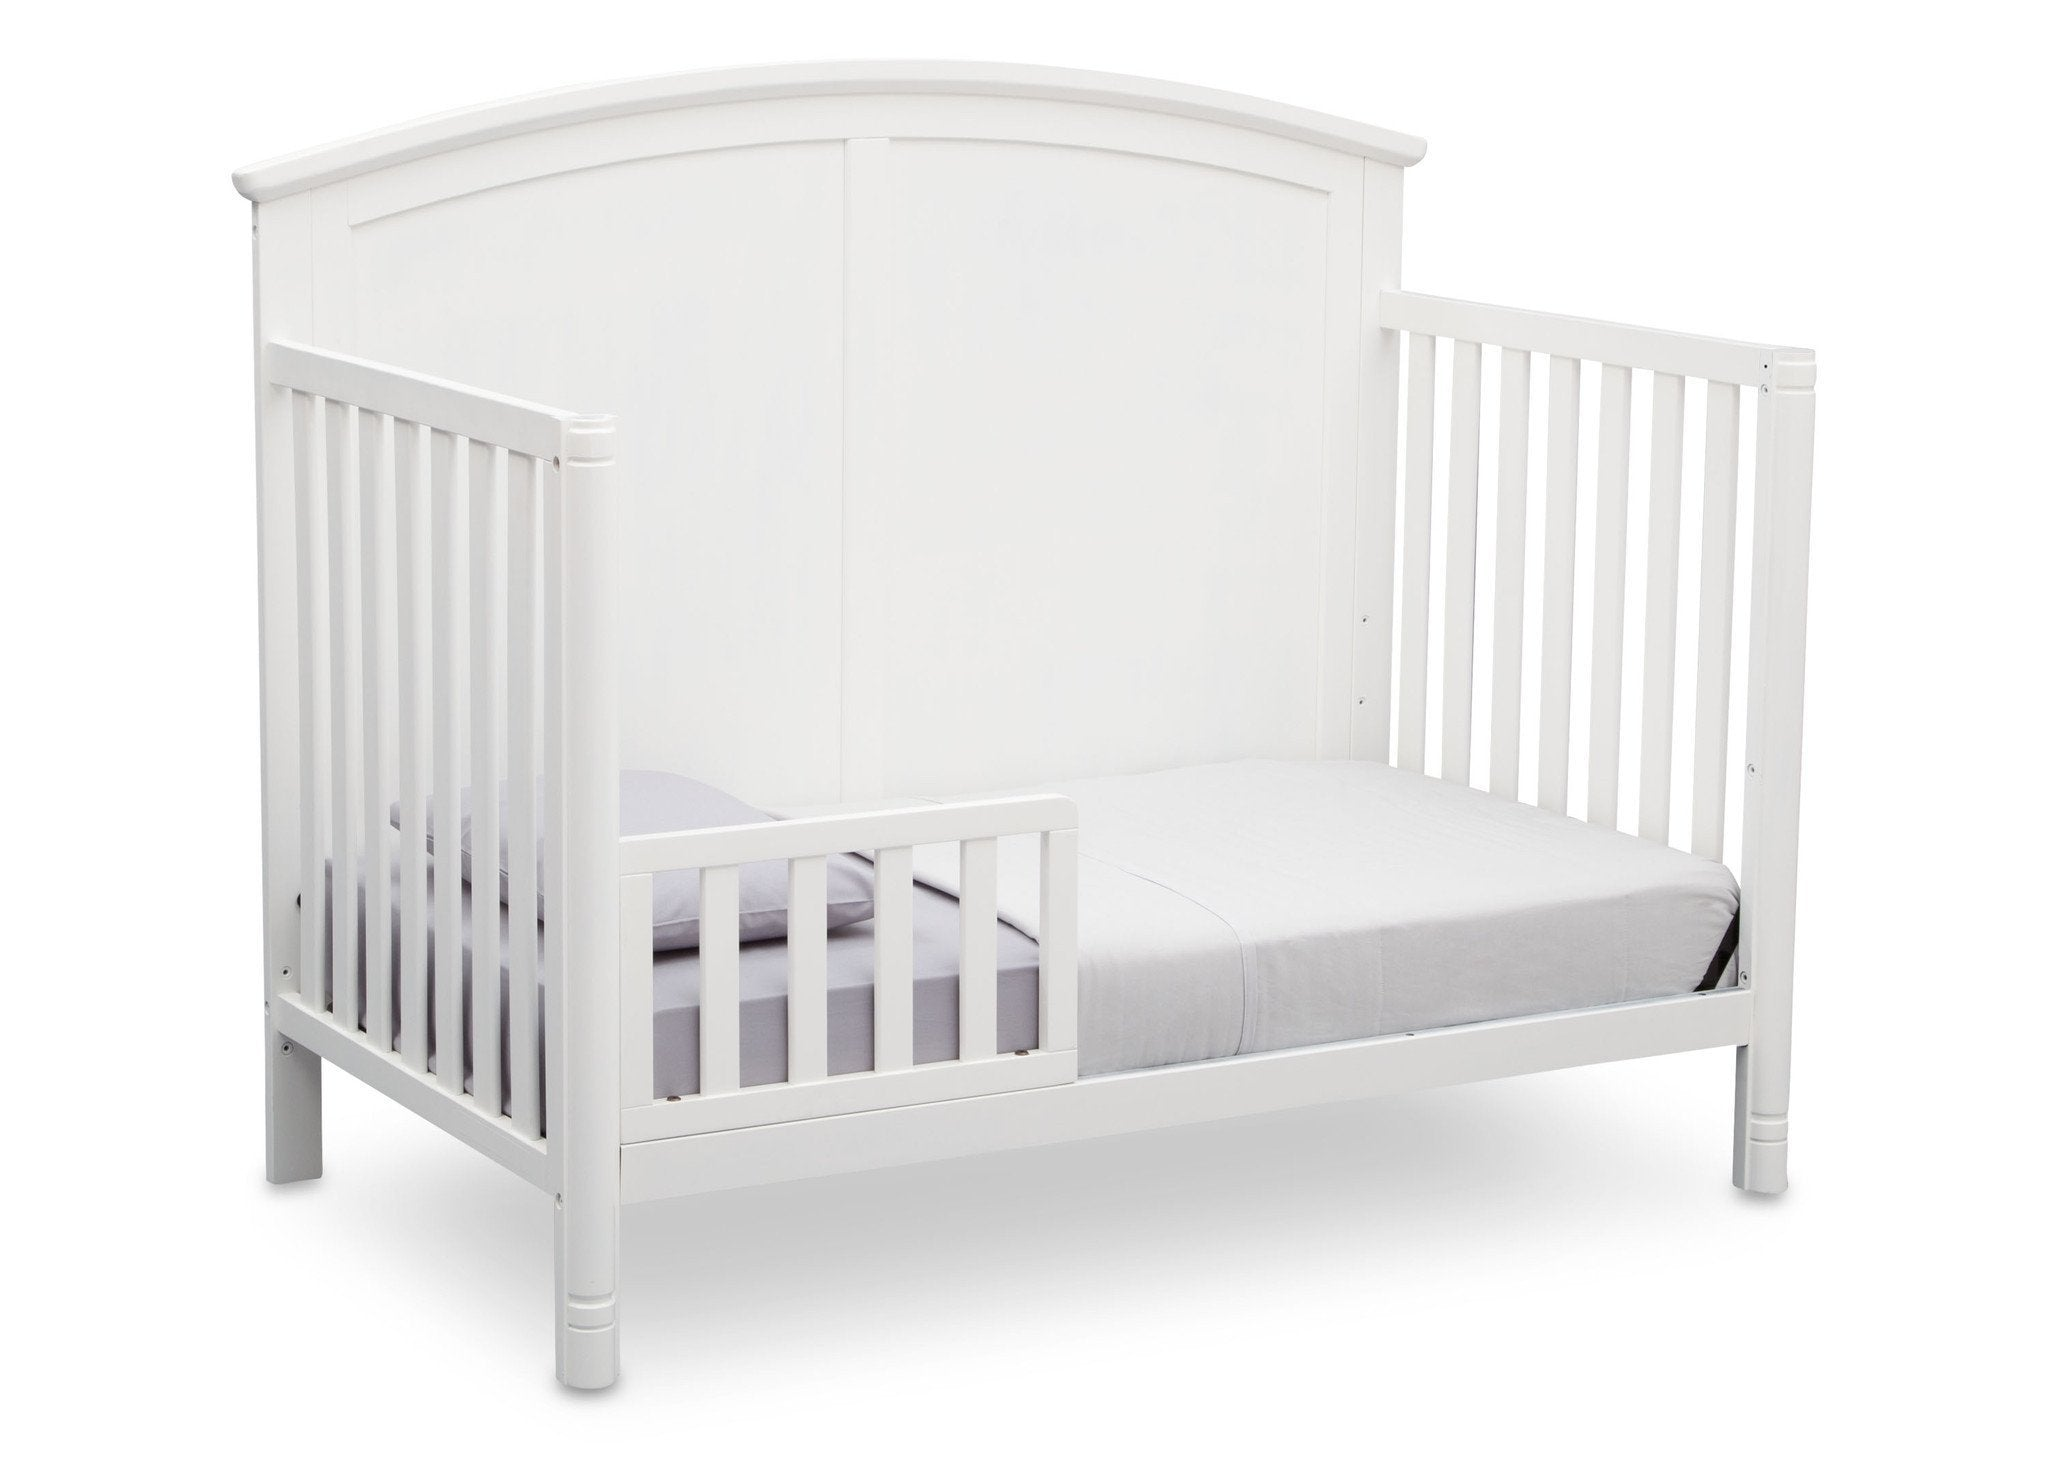 Delta Children White (100) Somerset 4-in-1 Crib Side View, Toddler Bed Conversion a4a